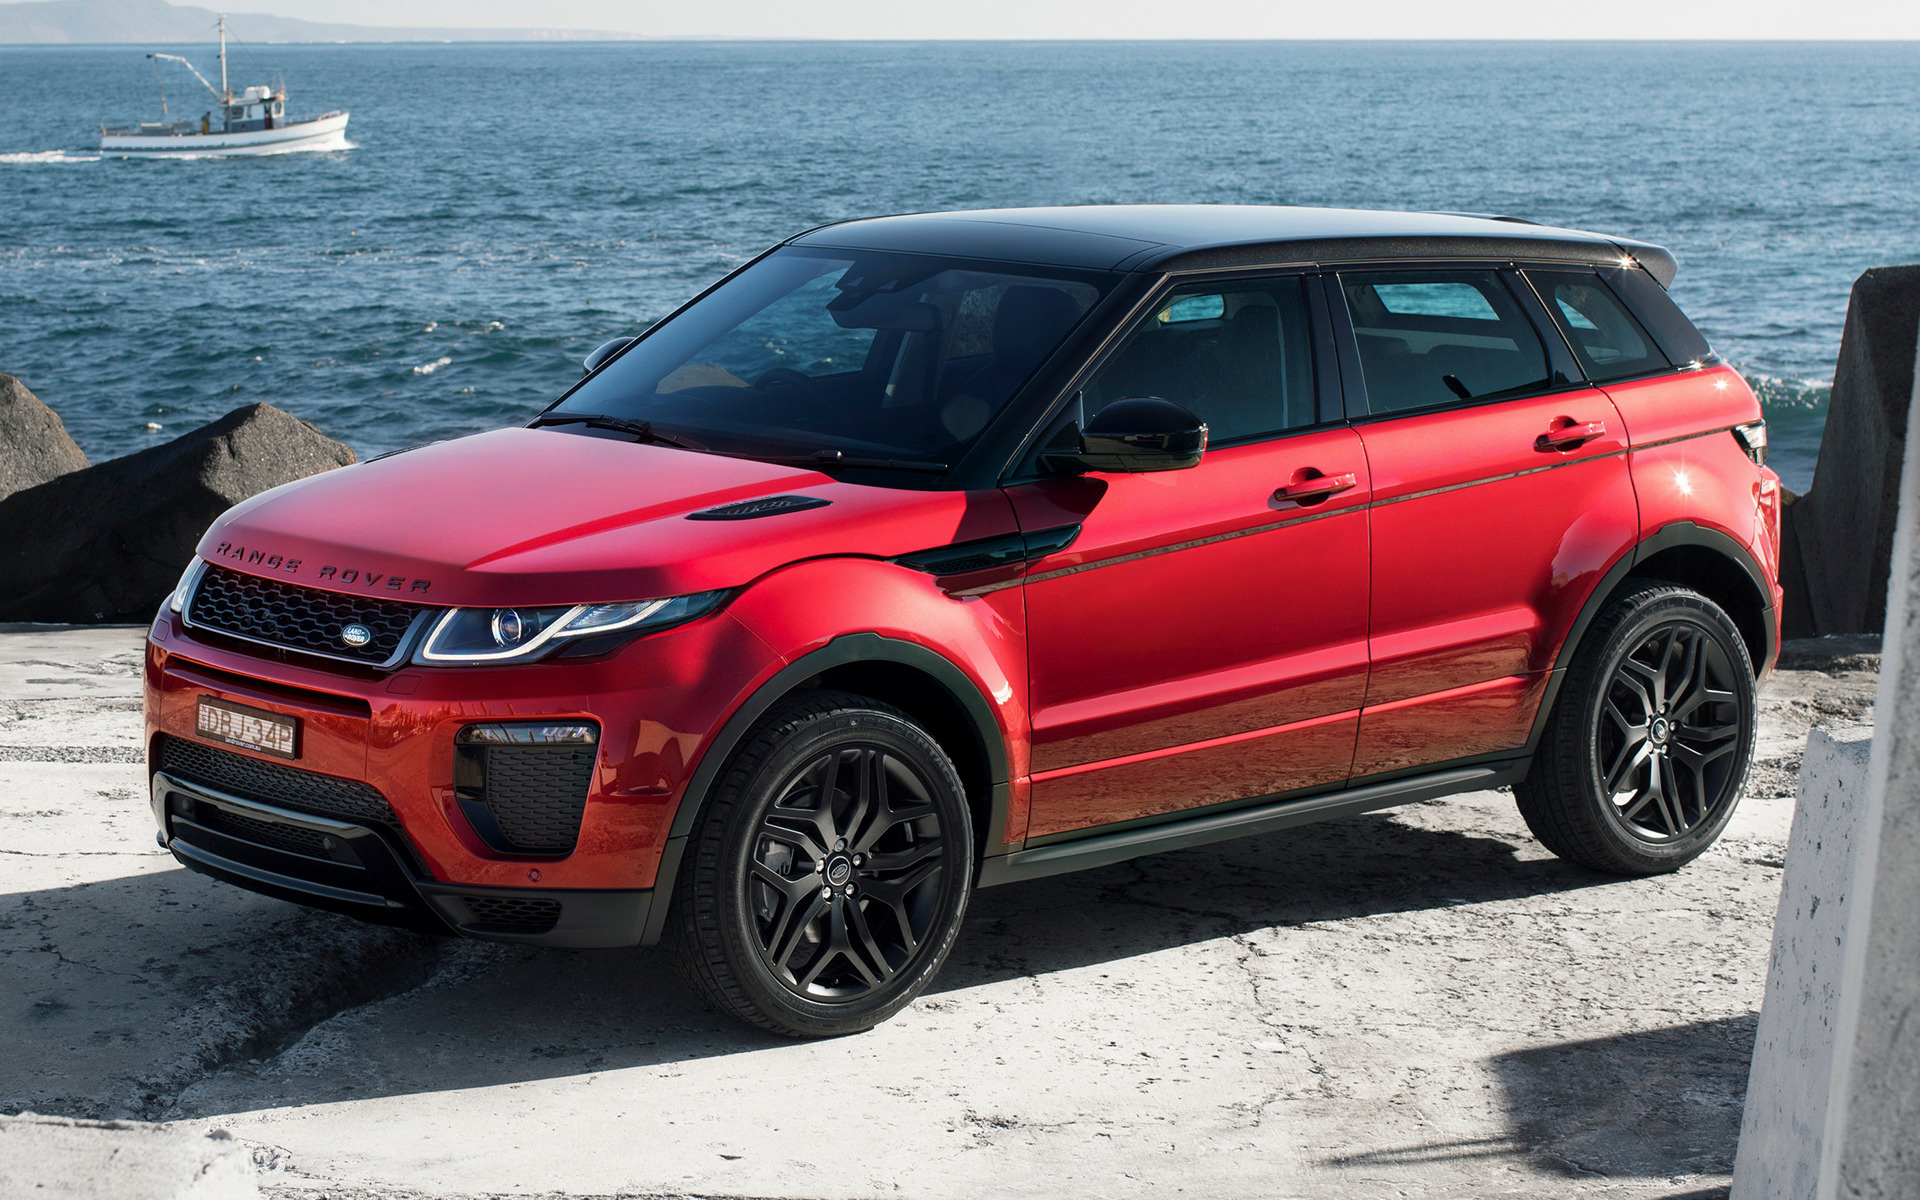 Range Rover Evoke >> Range Rover Evoque HSE Dynamic (2015) AU Wallpapers and HD Images - Car Pixel